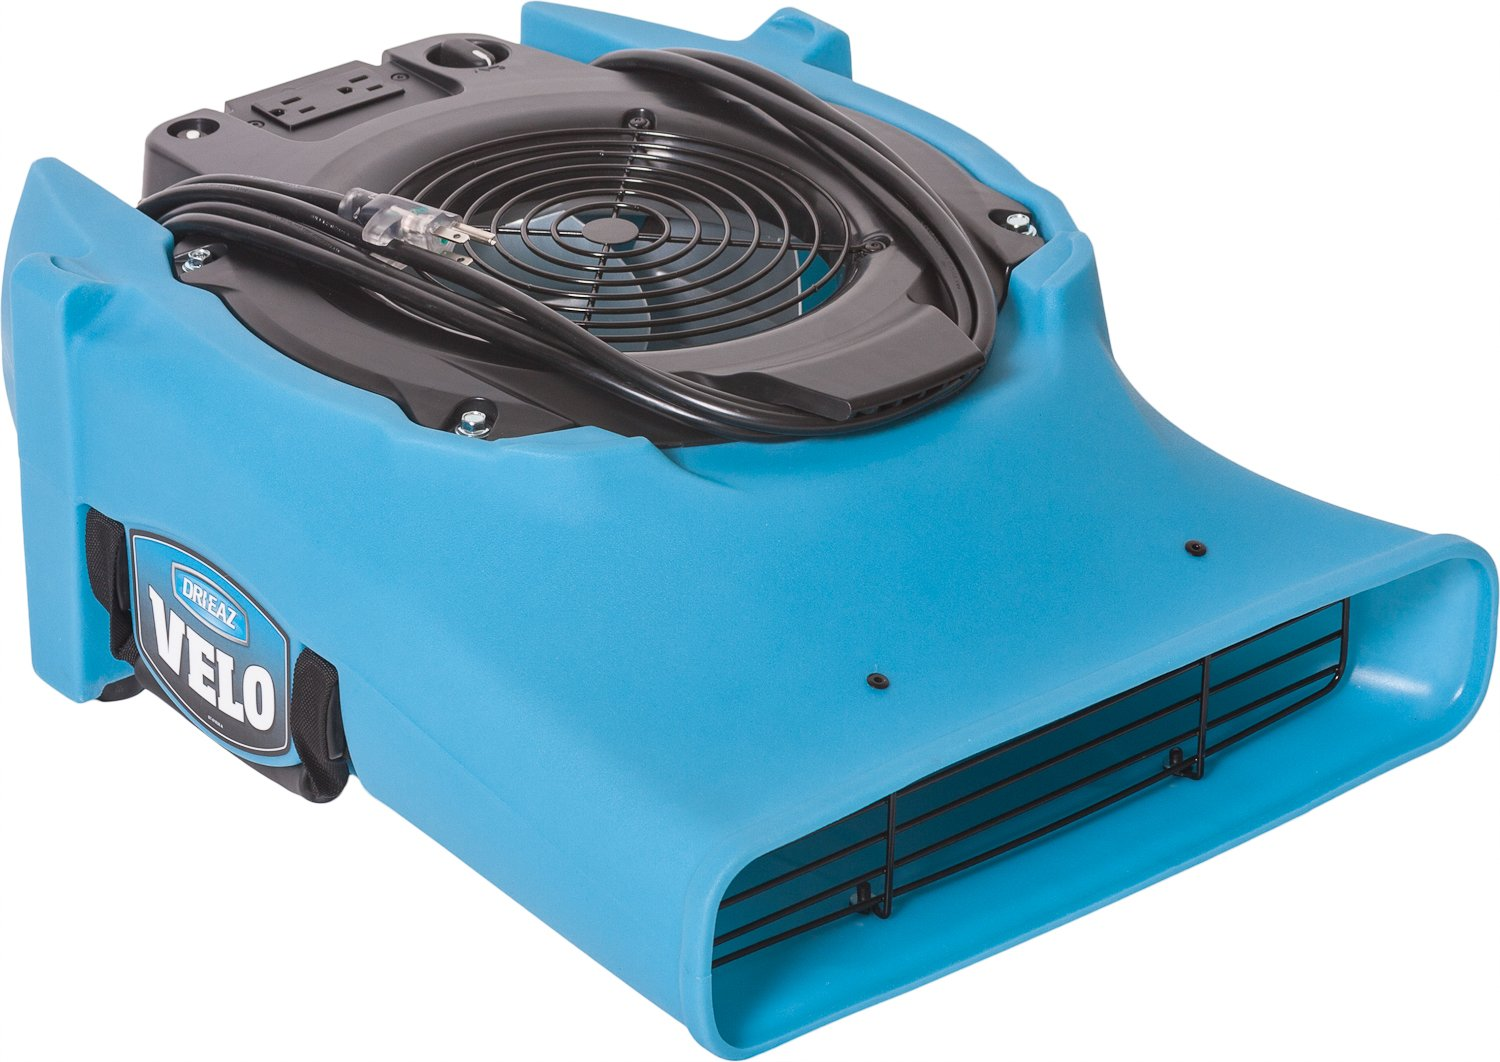 Dri Eaz Velo Air Mover F504 Professional Water Damage Dryer for Carpets, Walls, Floors, 1.9 Amp Saves Power, 1-Speed, High Velocity, Quiet, Well Built, Daisy Chains, Blue by Dri-Eaz